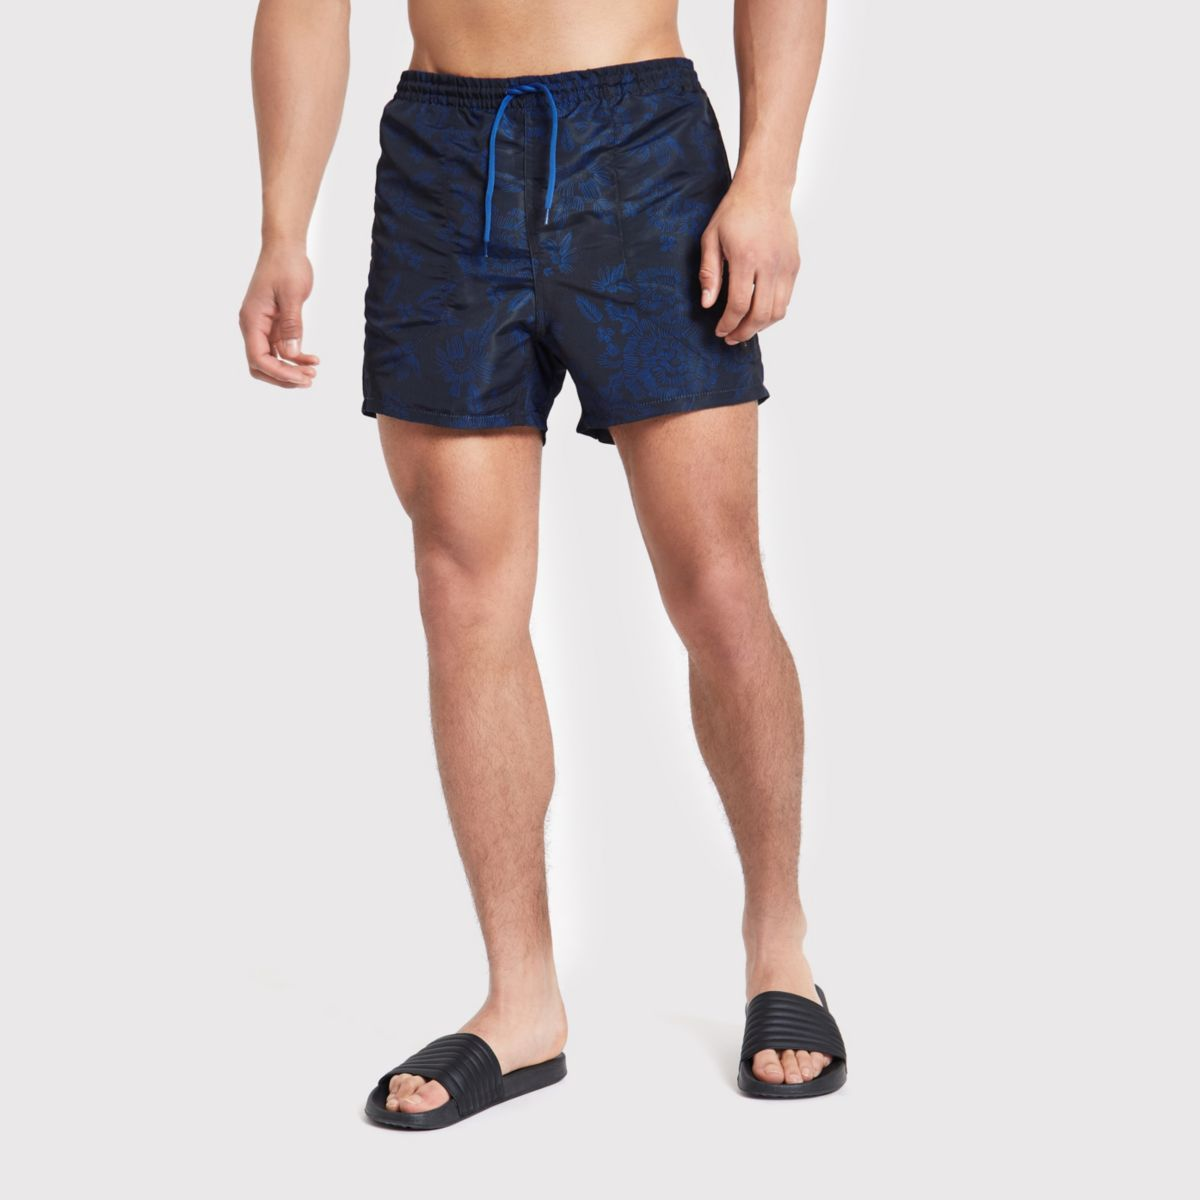 Limited Edition Online Clearance Choice River Island Mens Only and Sons Blue print swim shorts Only & Sons Huge Surprise Explore Sale Online 5oieLSL4U